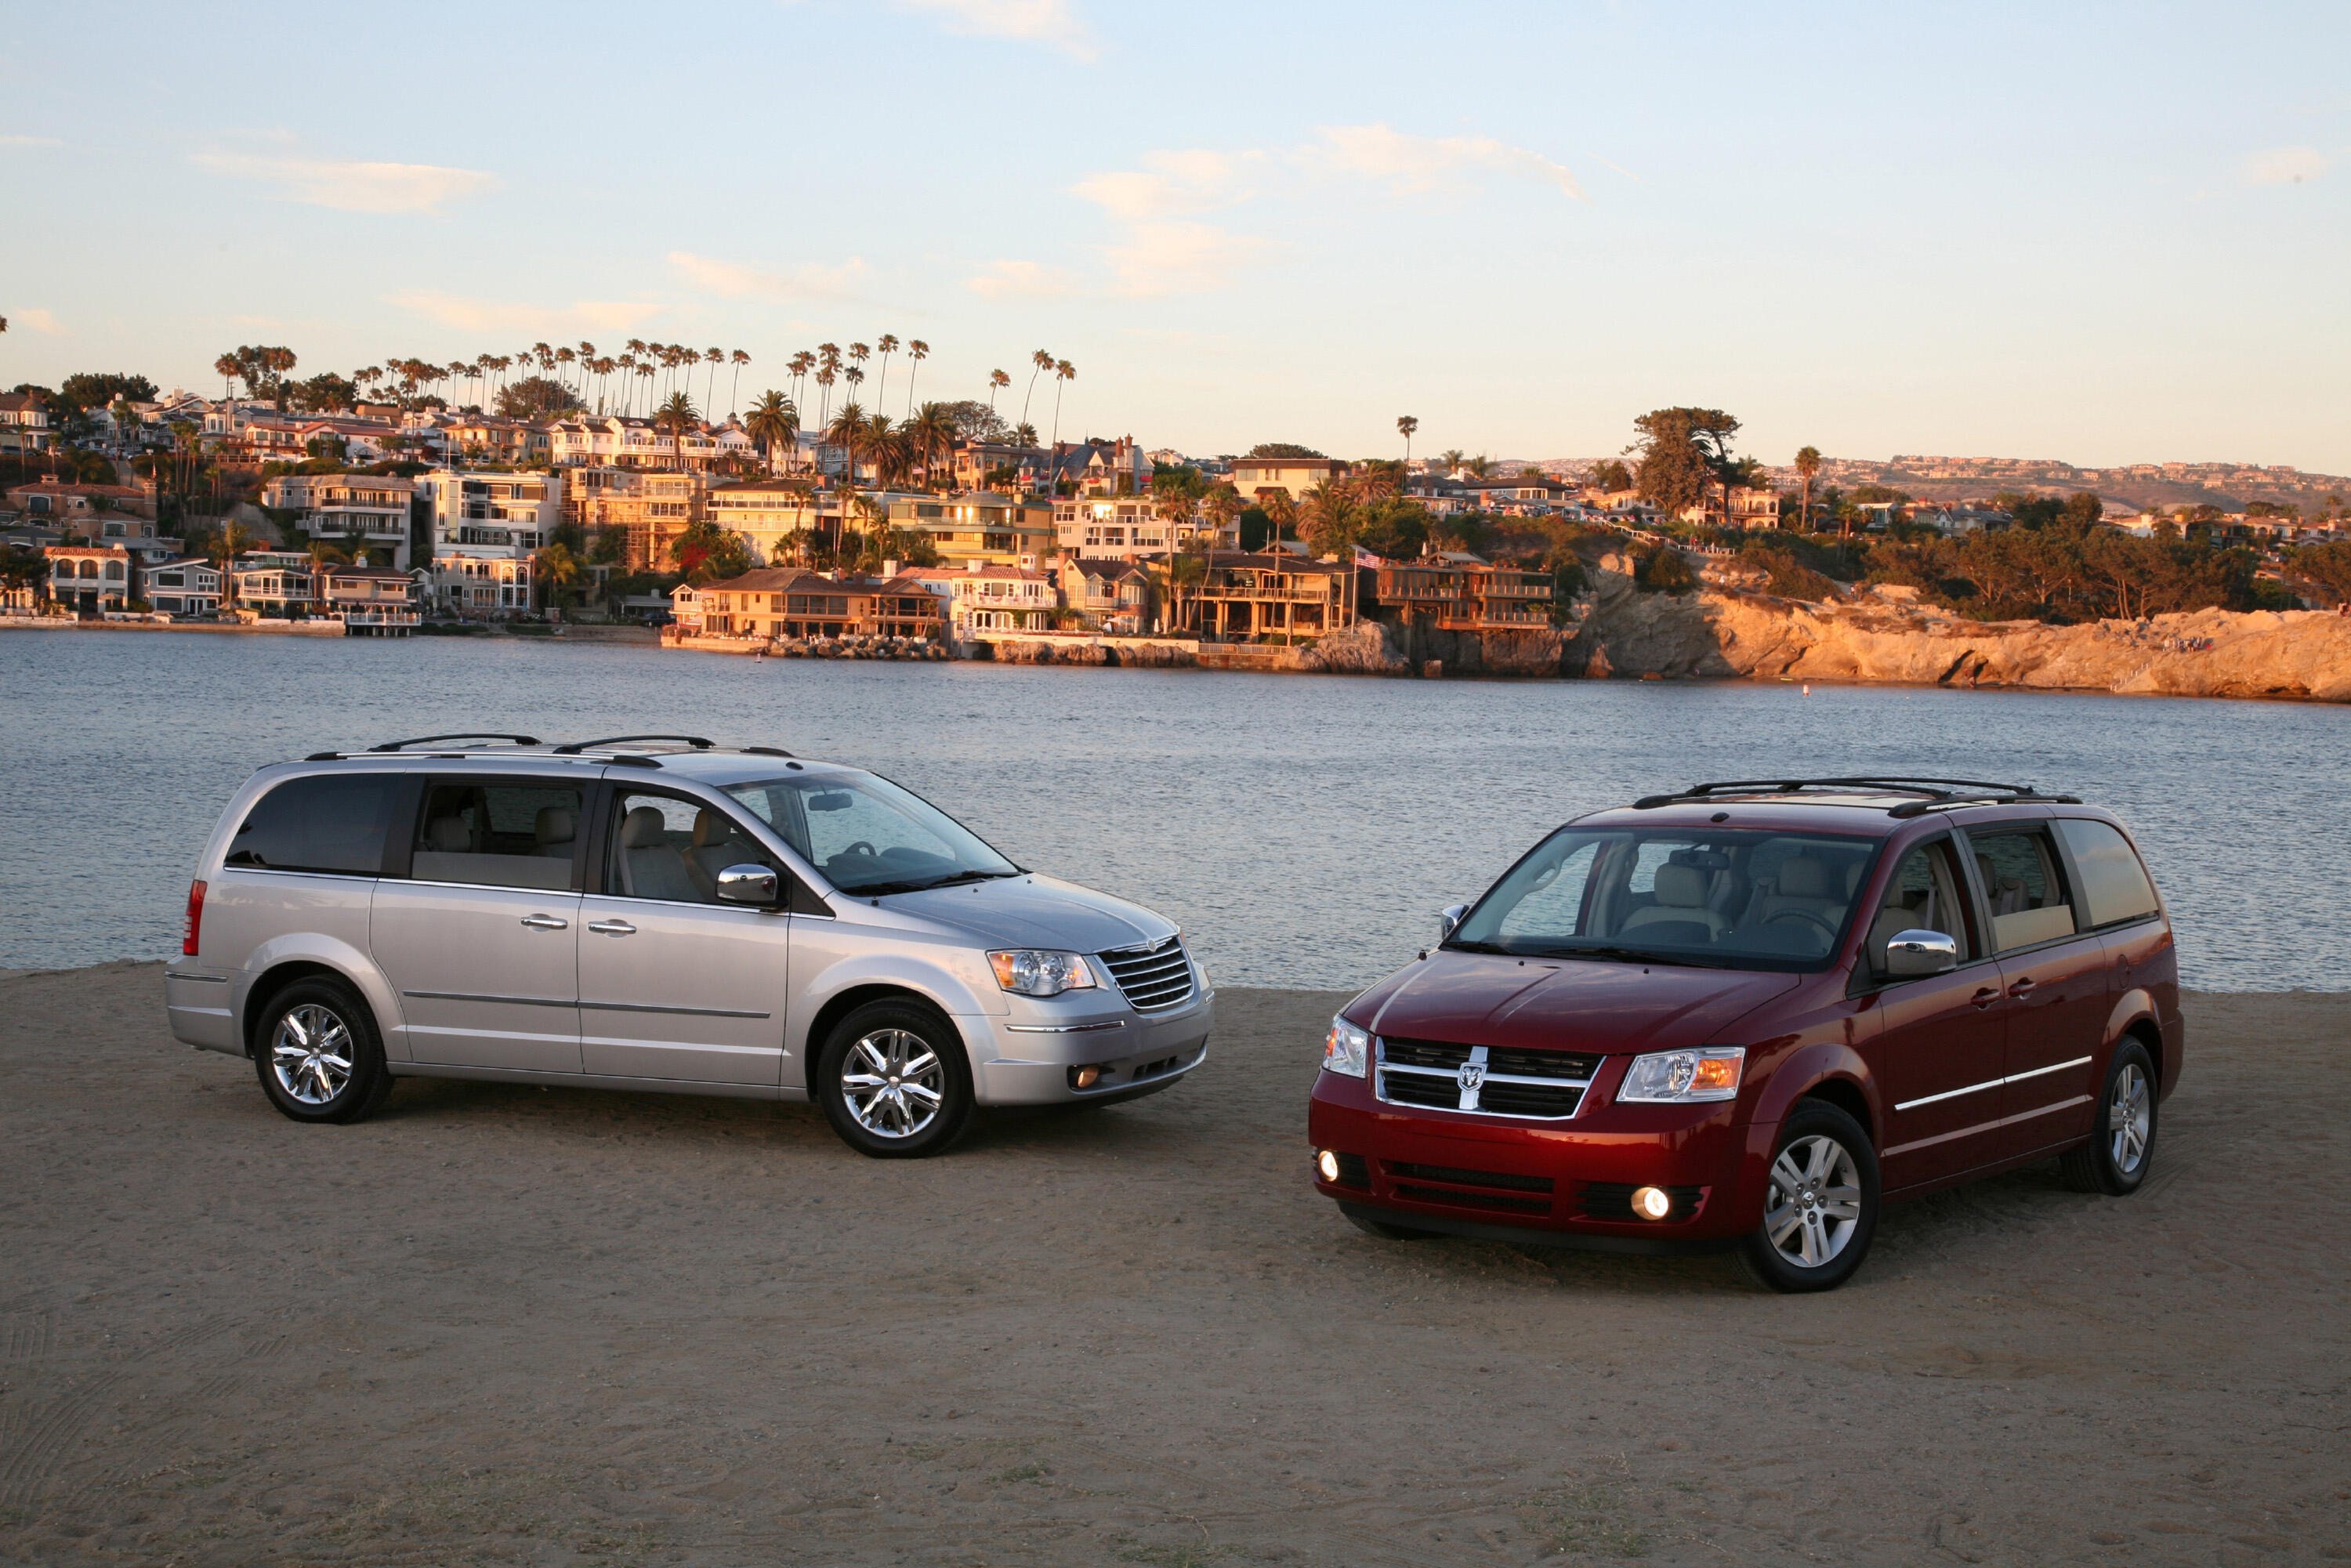 2008 Chrysler Town & Country and Dodge Caravan